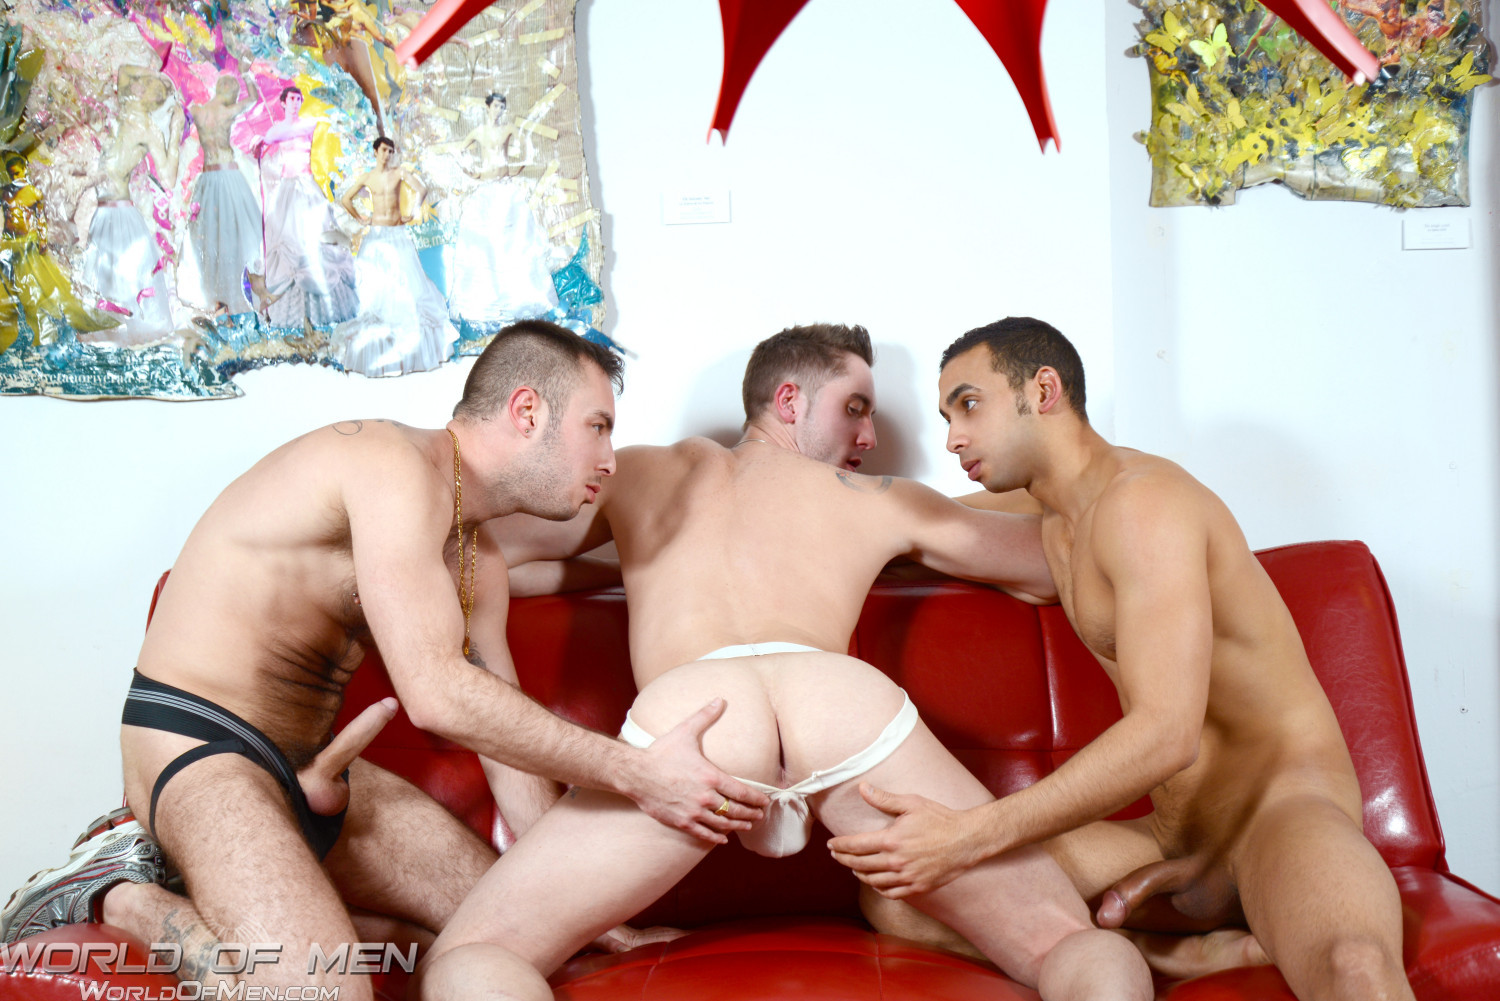 World-of-Men-Macanao-Torres-and-Juan-Lopez-and-Elio-Guzman-threeway-fucking-Amateur-Gay-Porn-04 Amatuer Gay Three Way Fucking At A Bathhouse in Madrid Spain